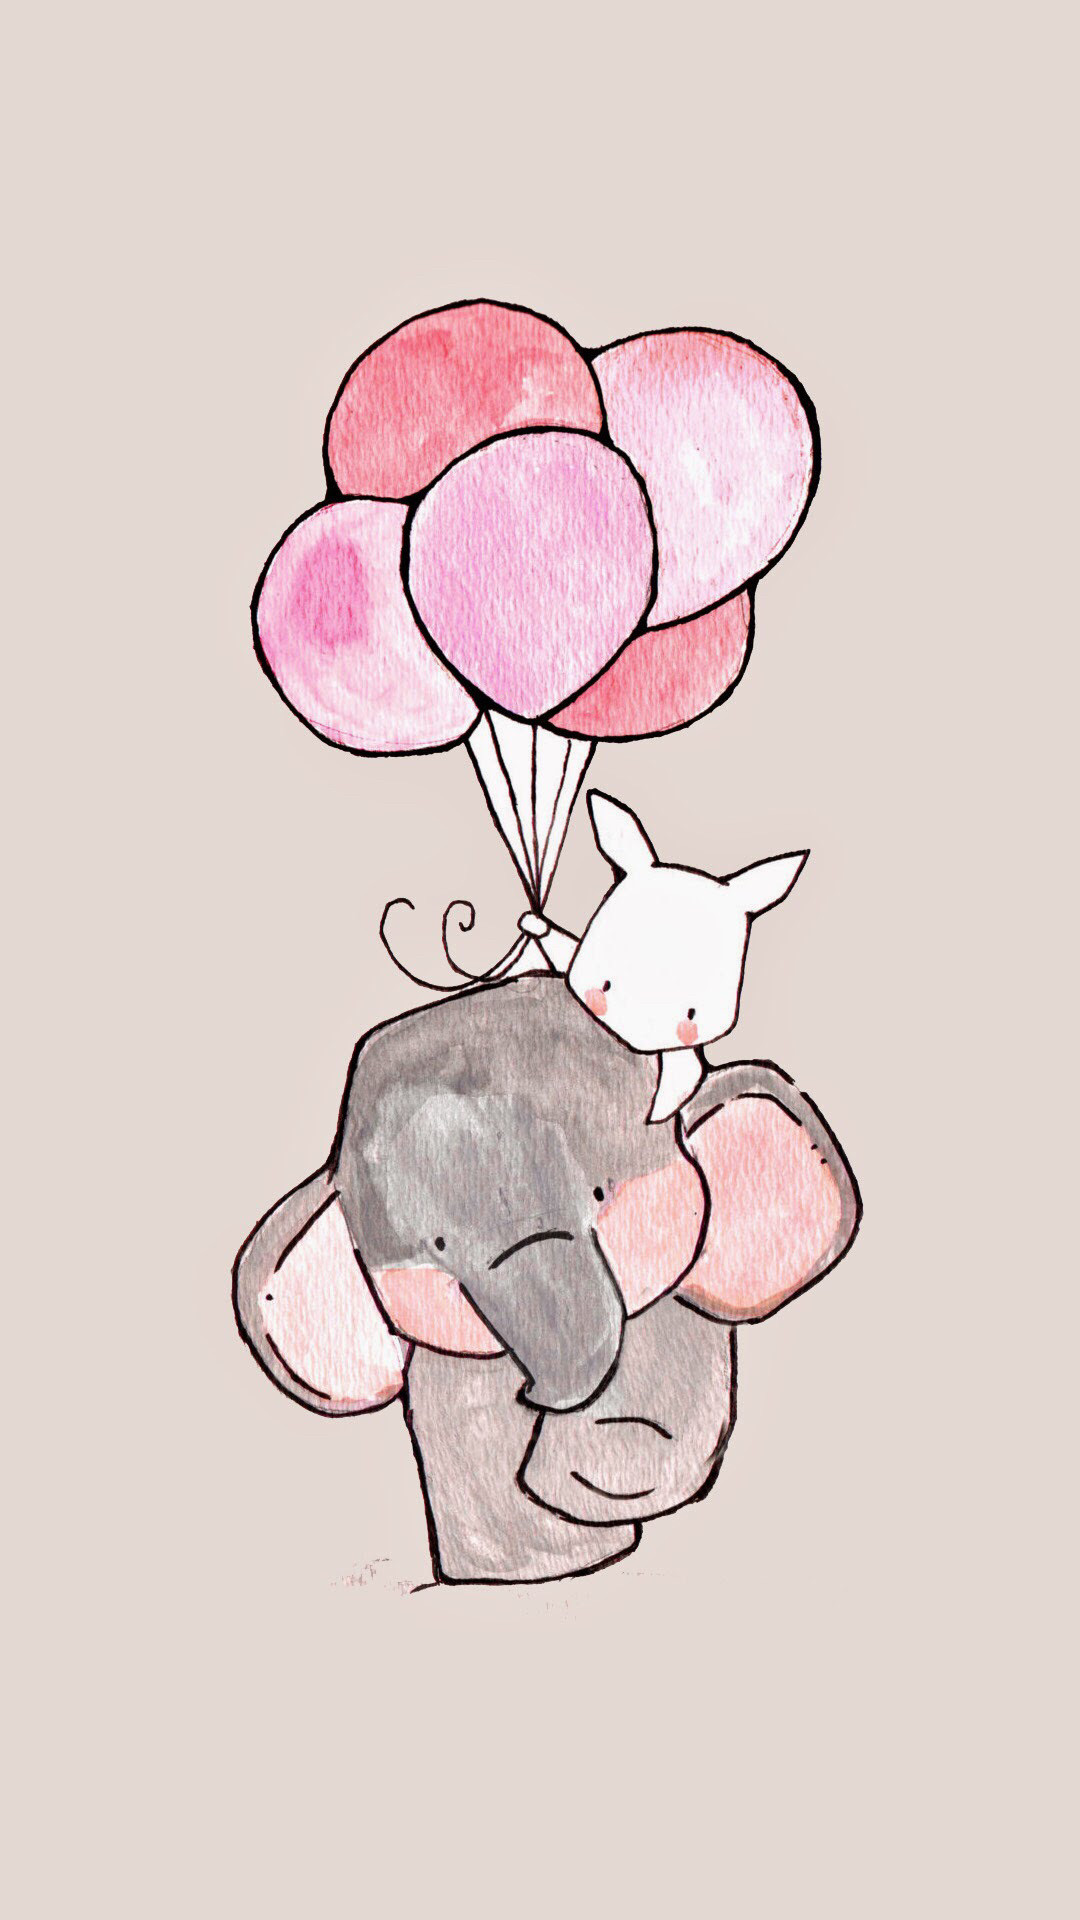 iphone wallpaper girly elephant and rabbit.